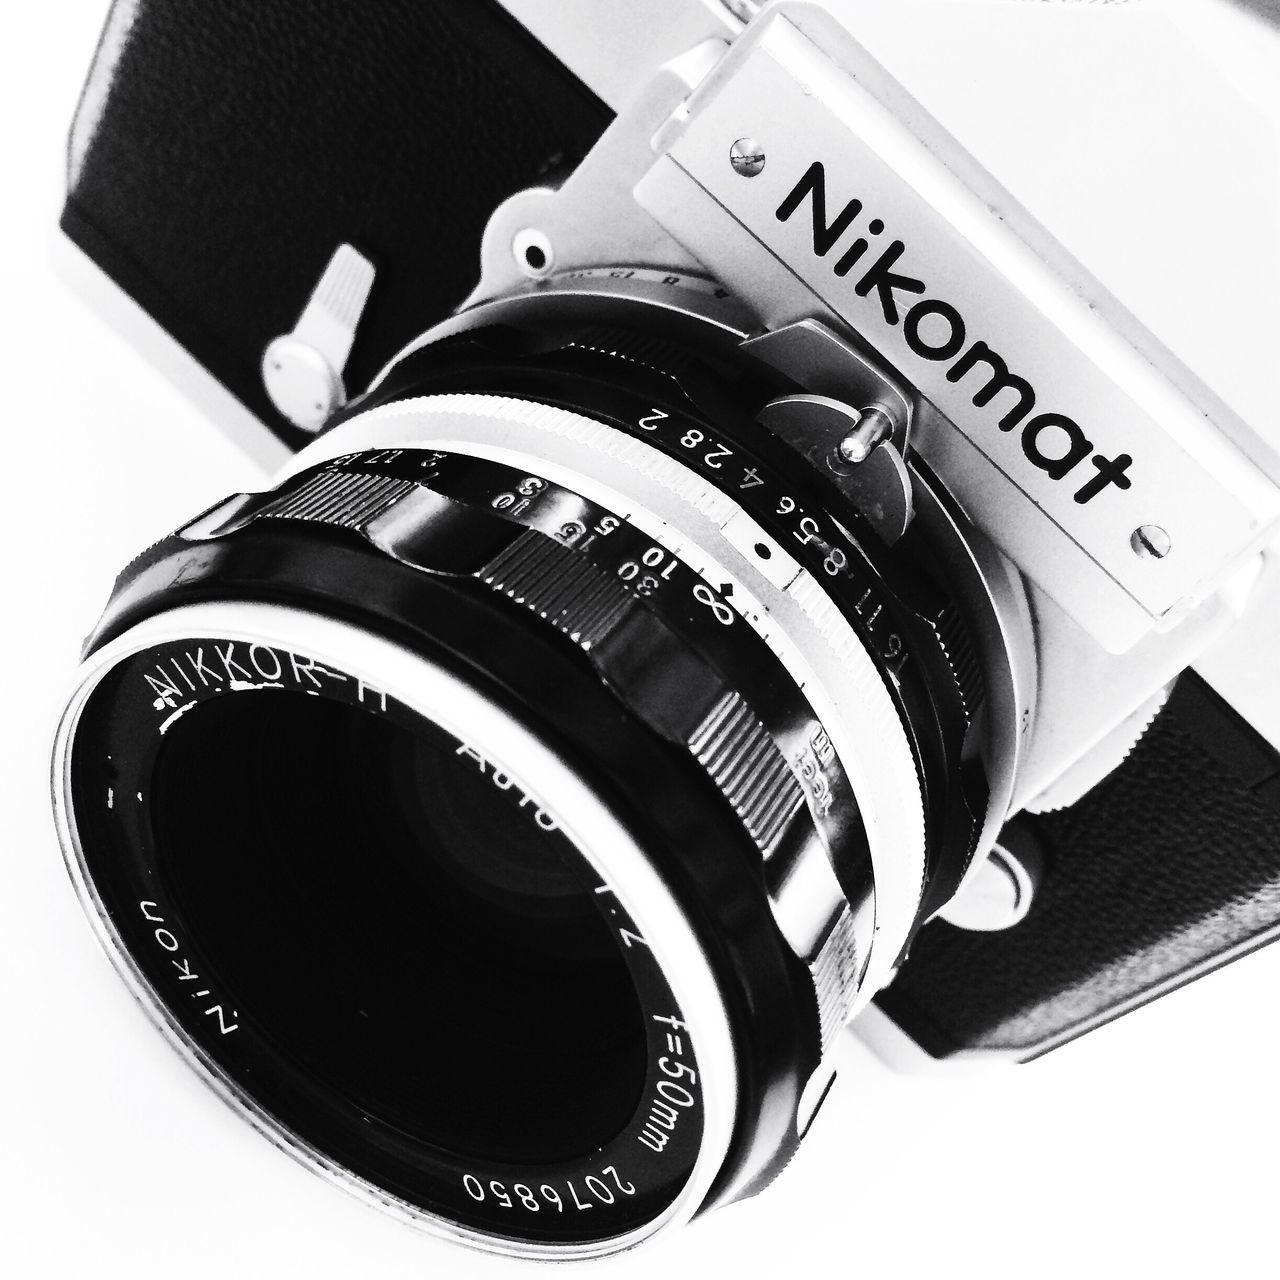 camera - photographic equipment, photography themes, film industry, no people, camera, indoors, modern, technology, close-up, day